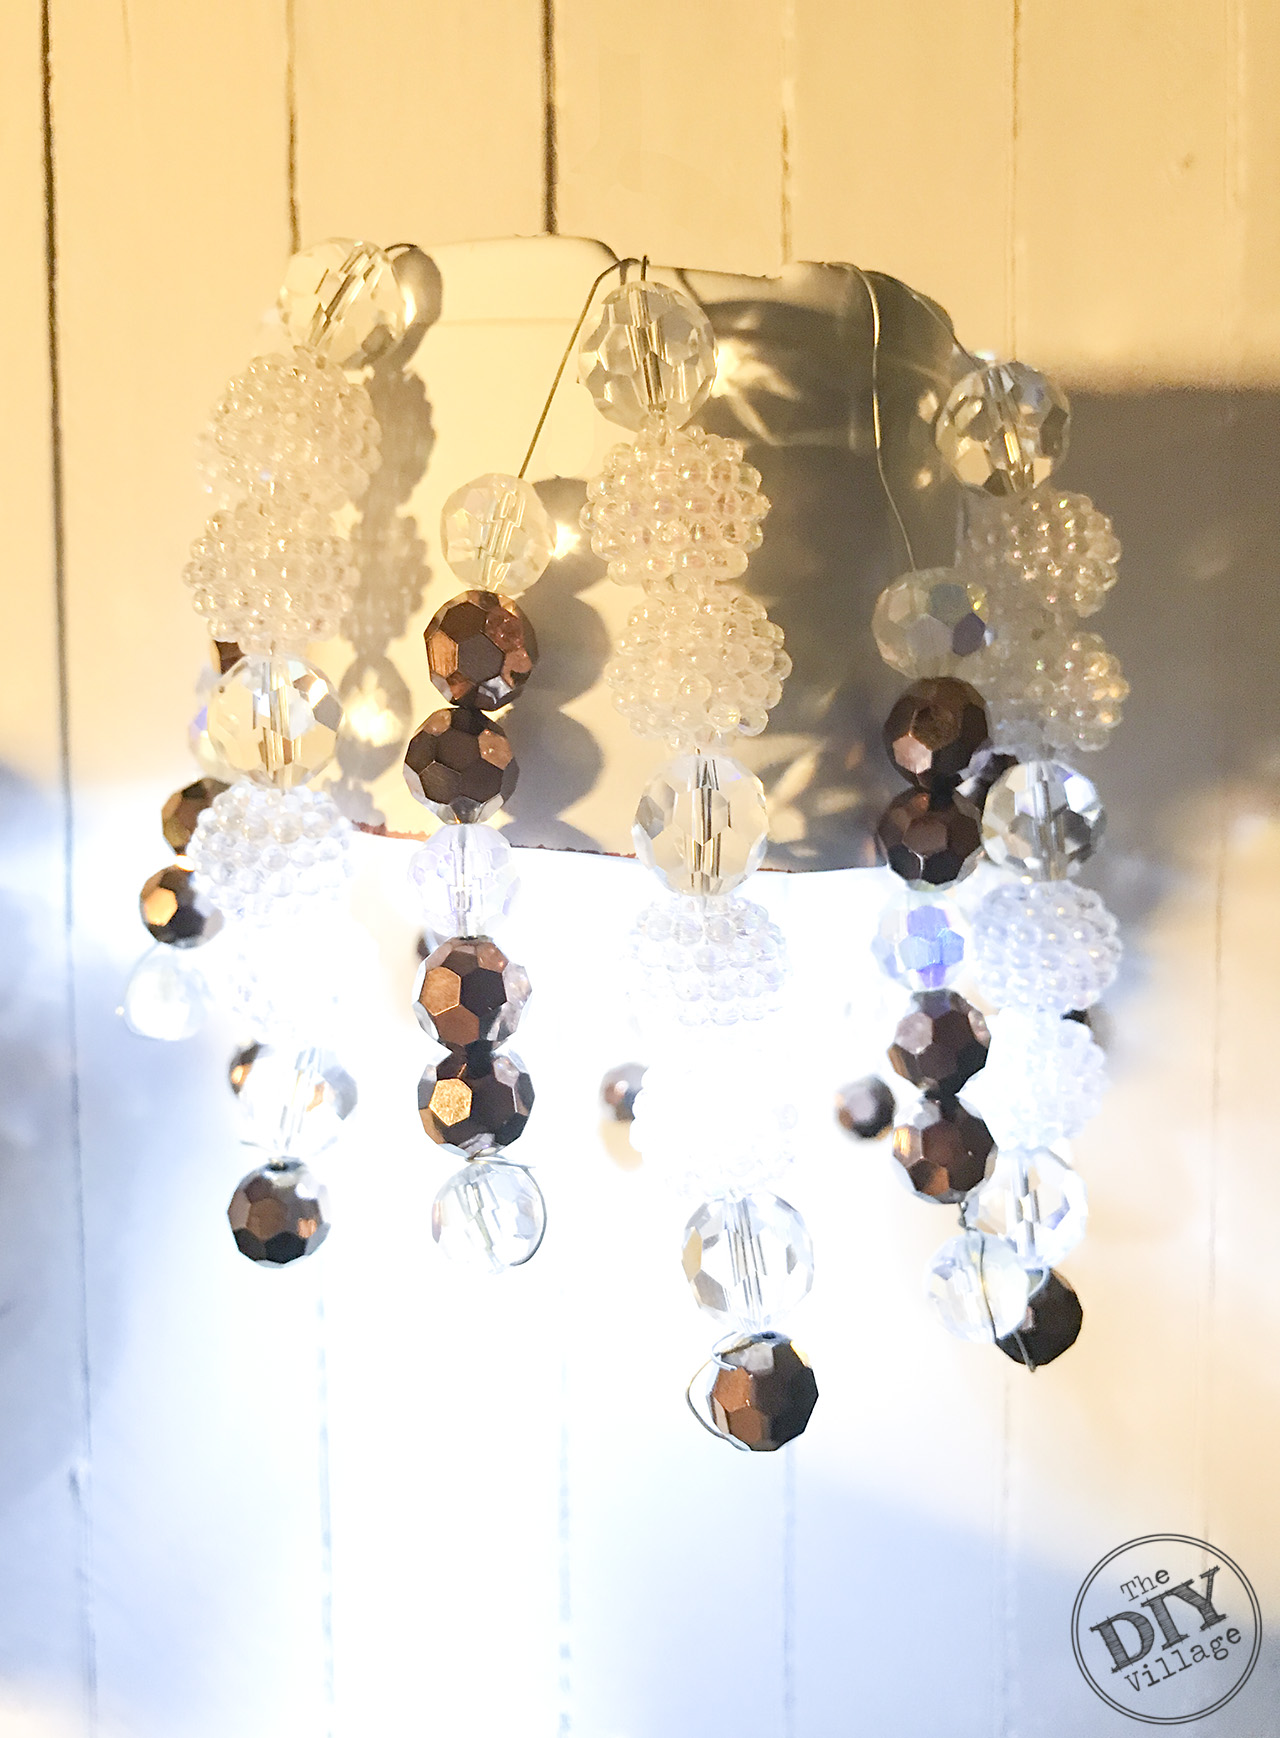 Diy locker chandelier for the crafty girl the diy village adhere the magnets to the top of the pot let them dry over night the next day your diy locker chandelier is ready to hang in your locker arubaitofo Images